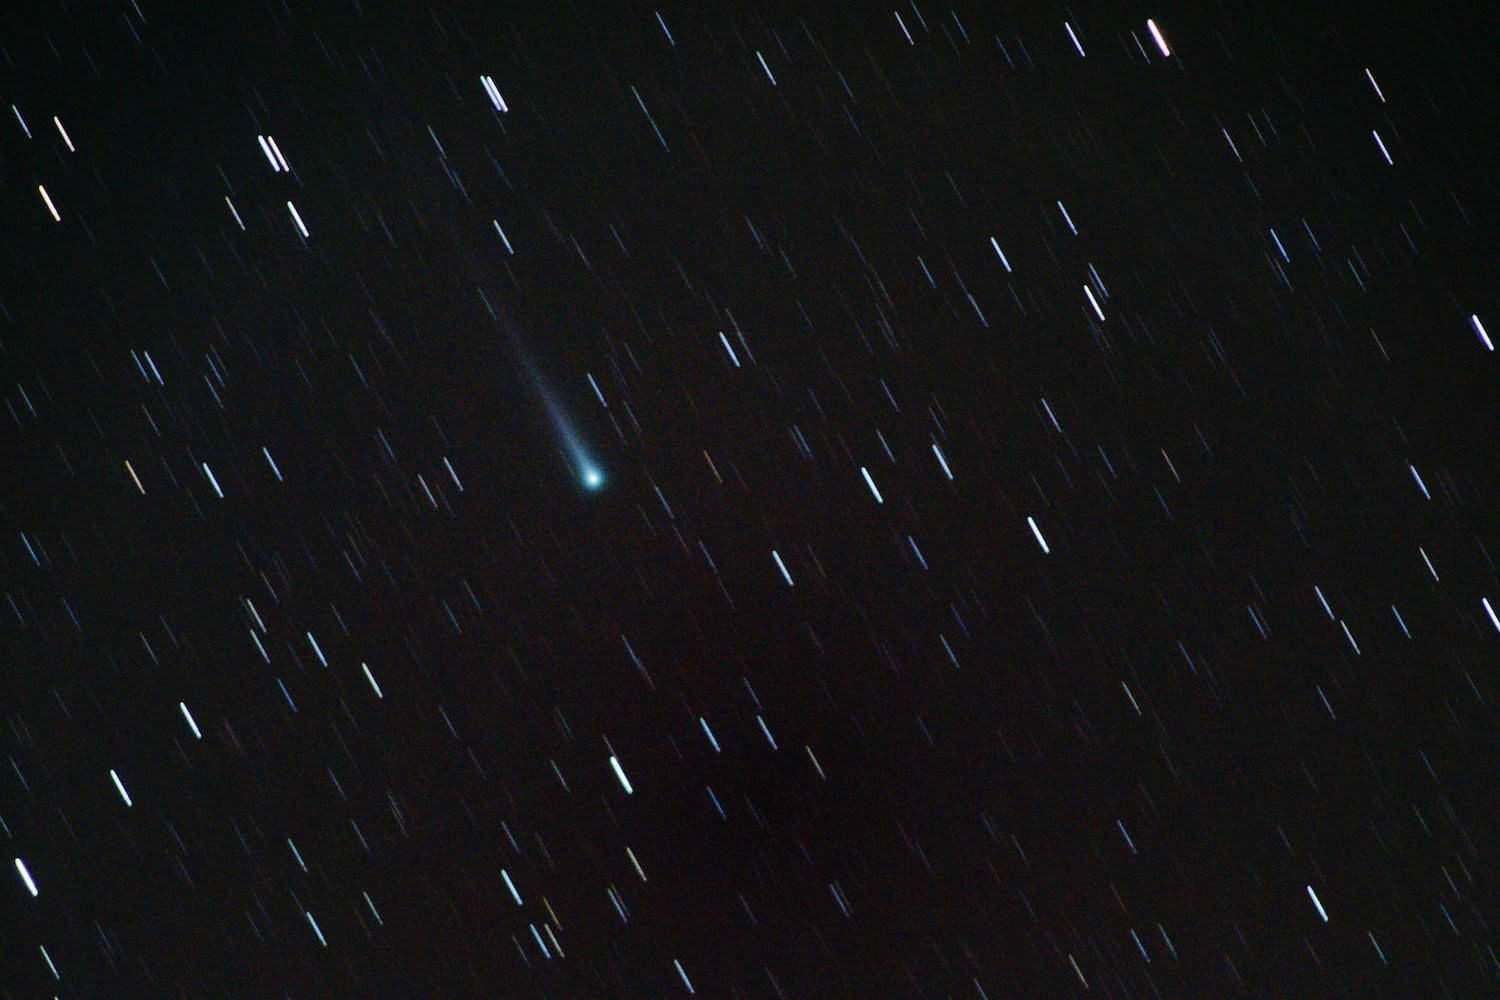 Night Sky December - Comet - theilr via Flickr